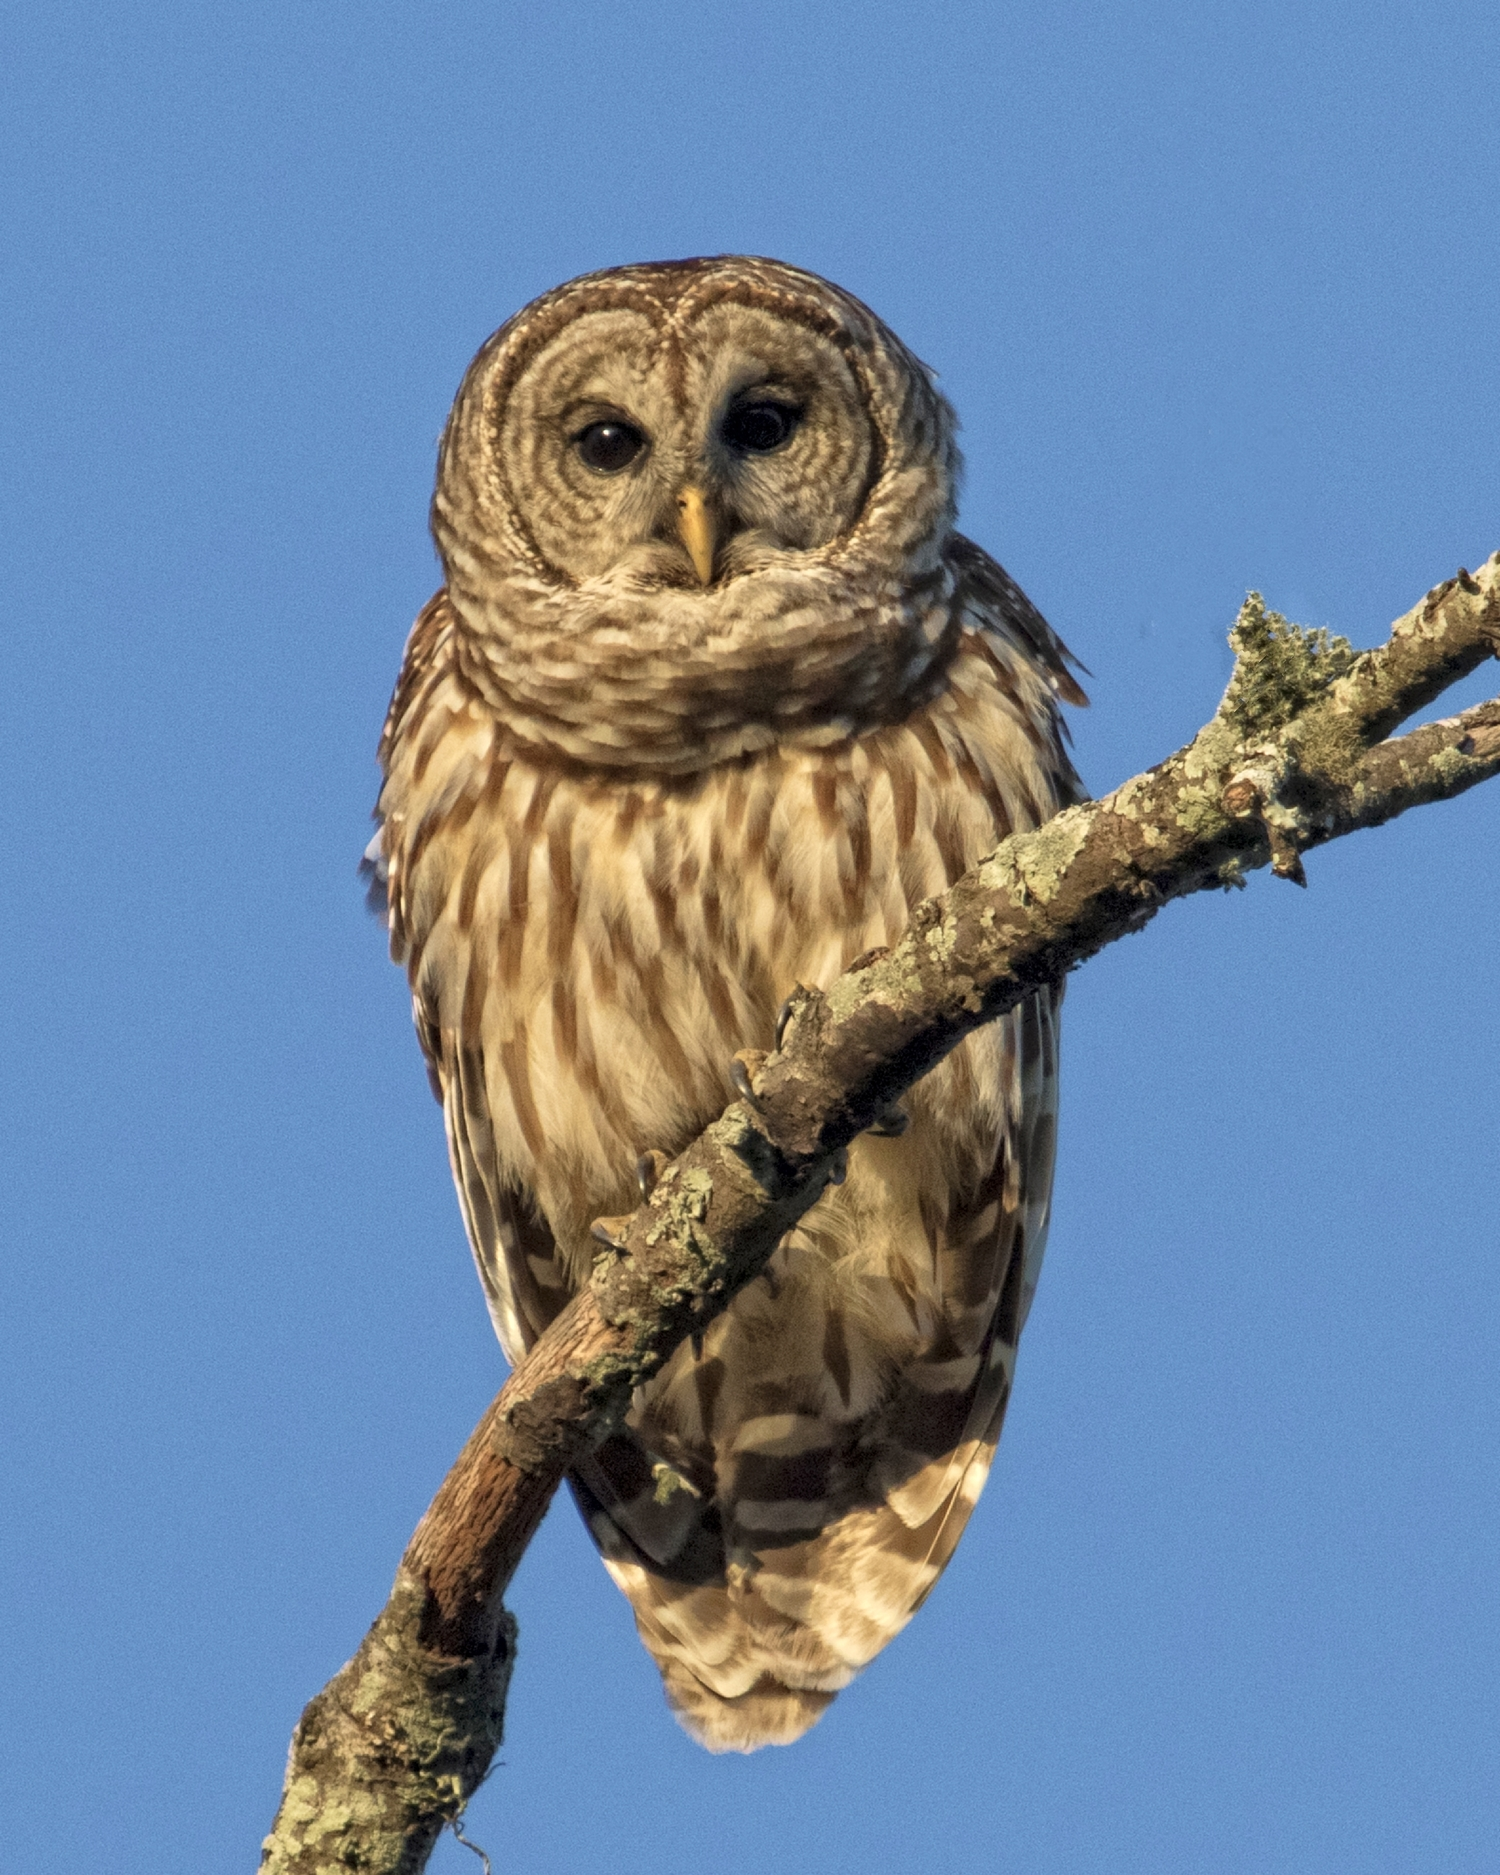 Female Barred Owl photo from a few years ago I called into the front yard..decided to try again